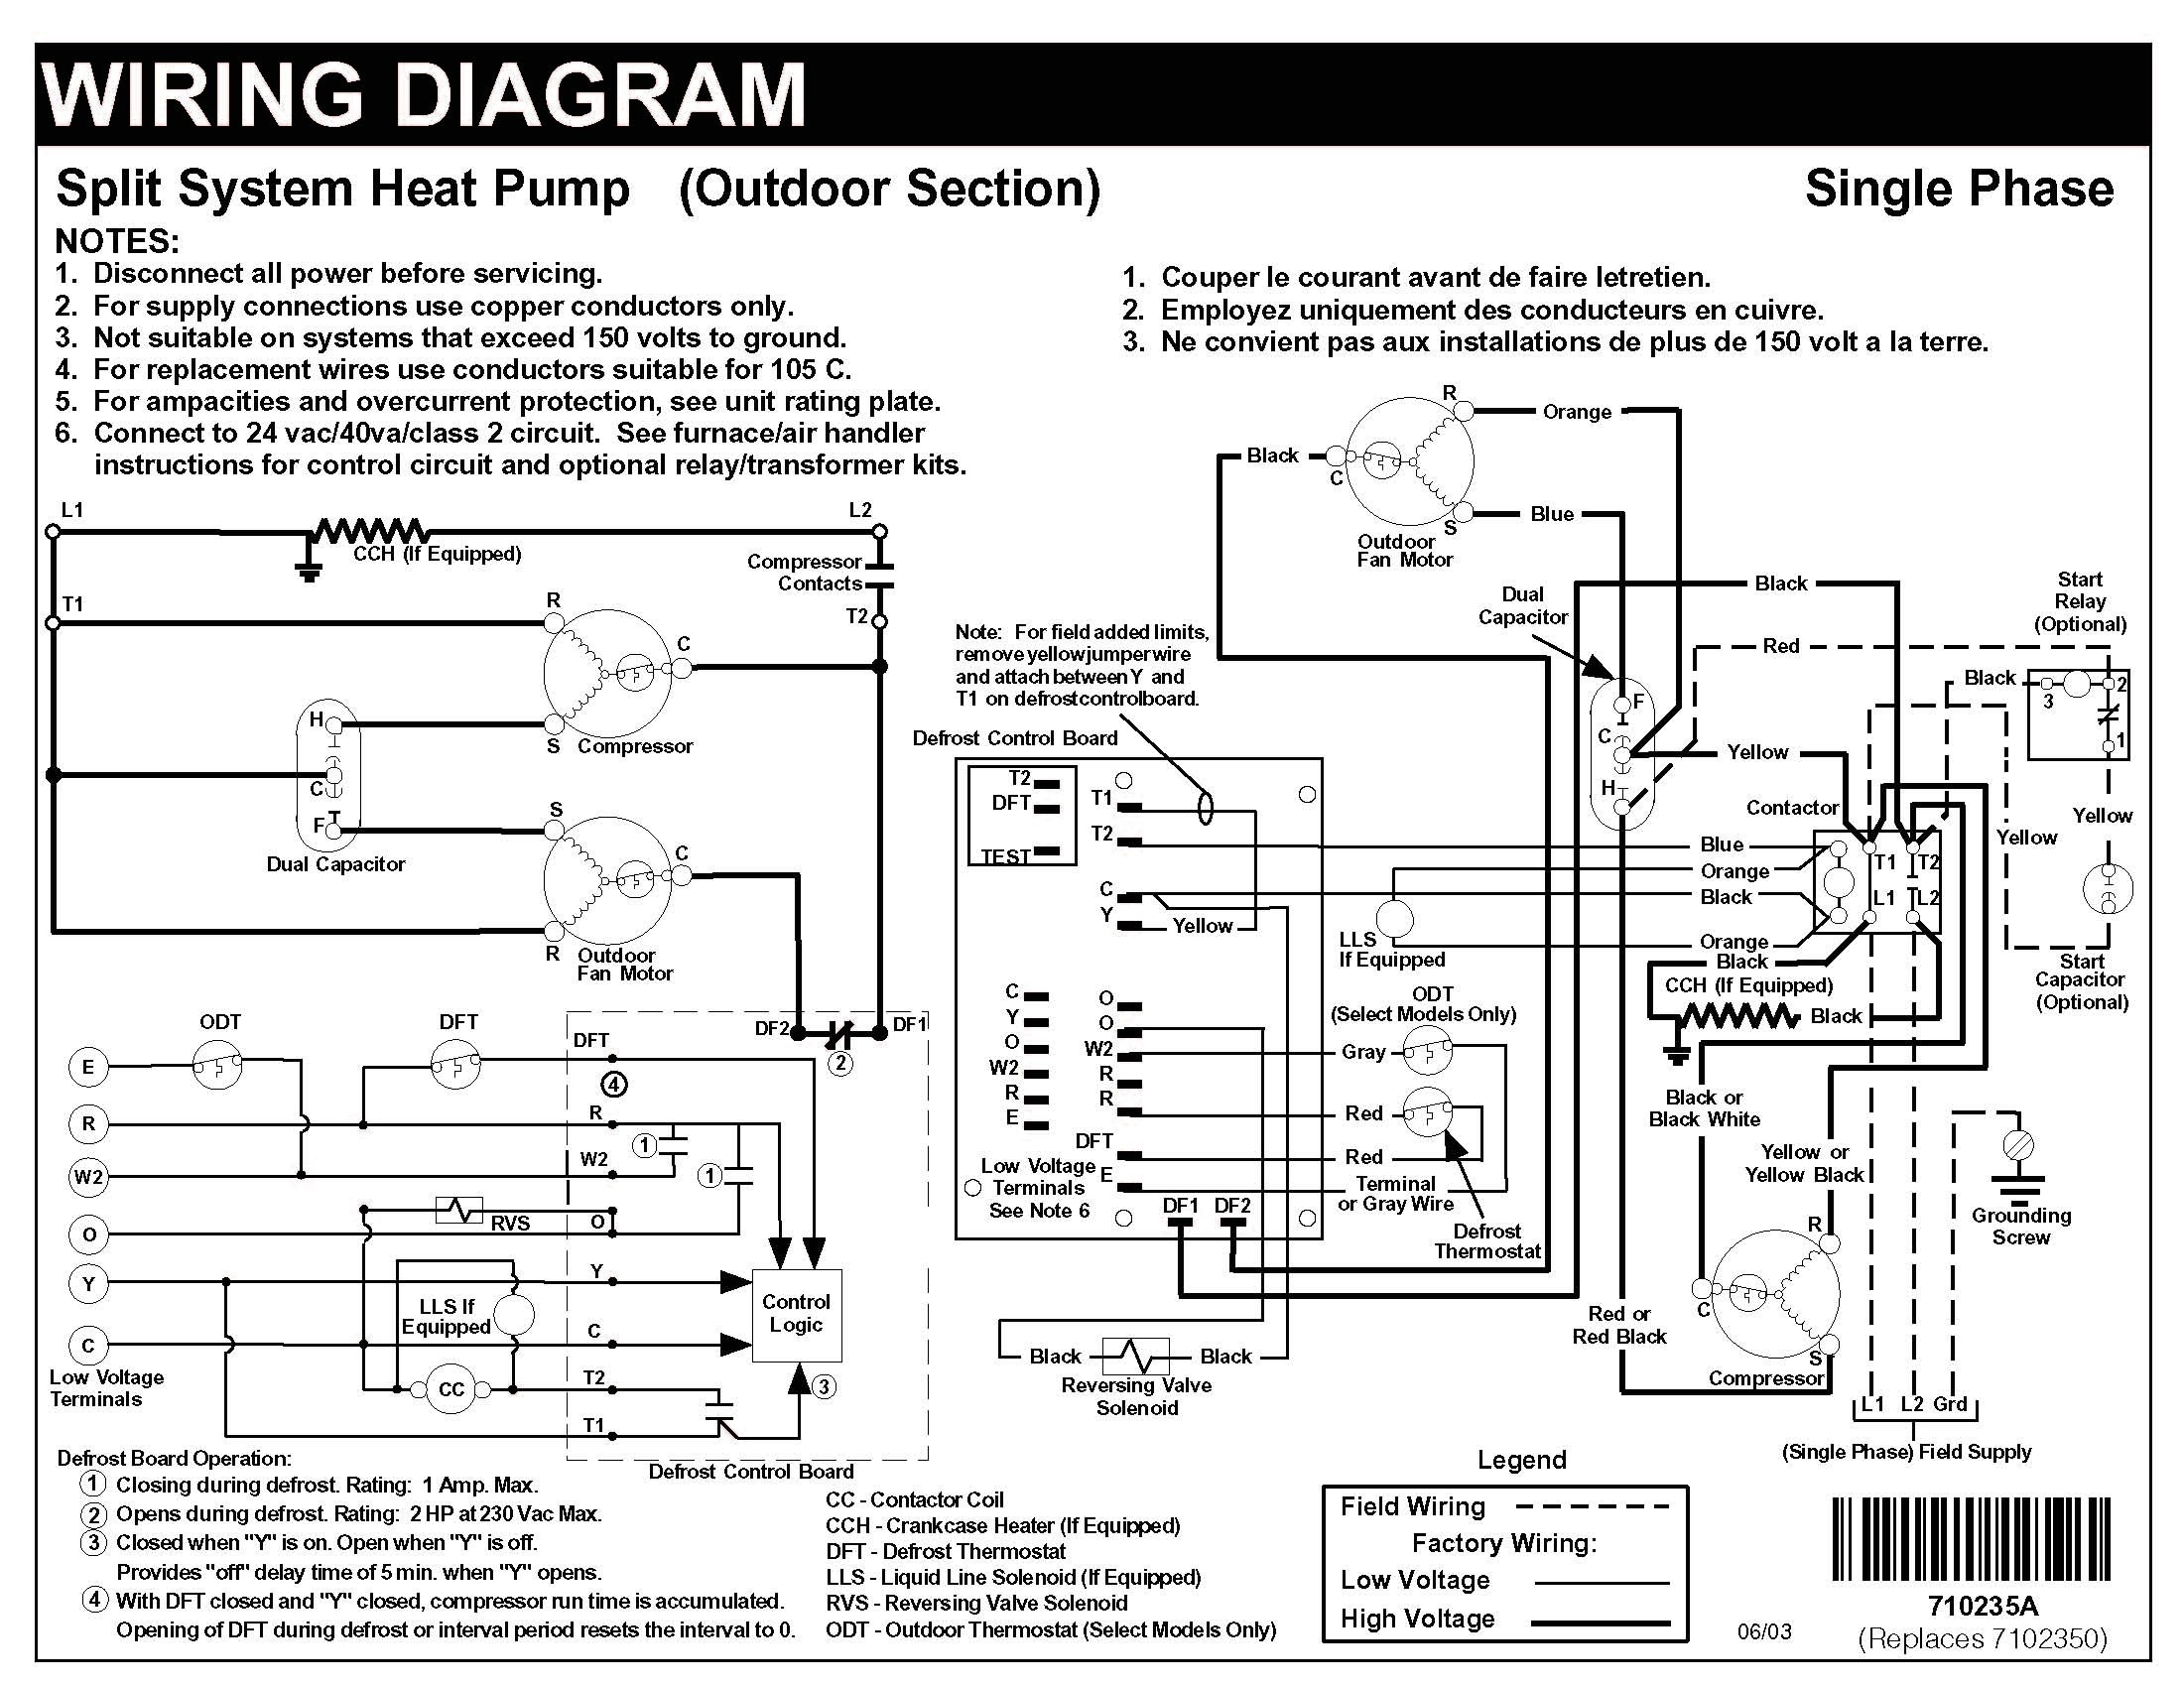 central ac wiring schematic central air conditioner wiring diagram | free wiring diagram honda accord ac wiring schematic